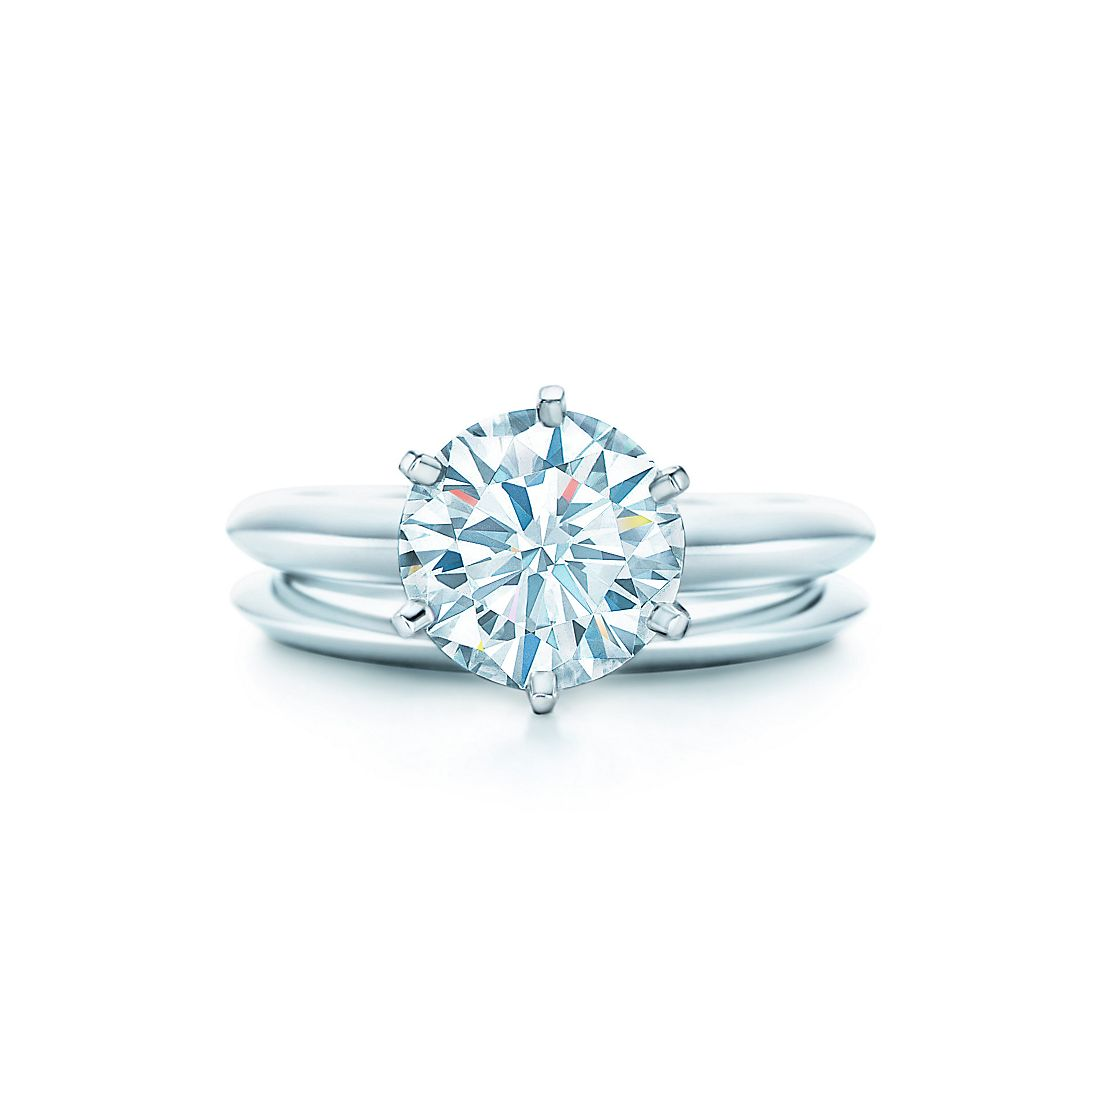 The Tiffany Setting Engagement Rings Tiffany Co